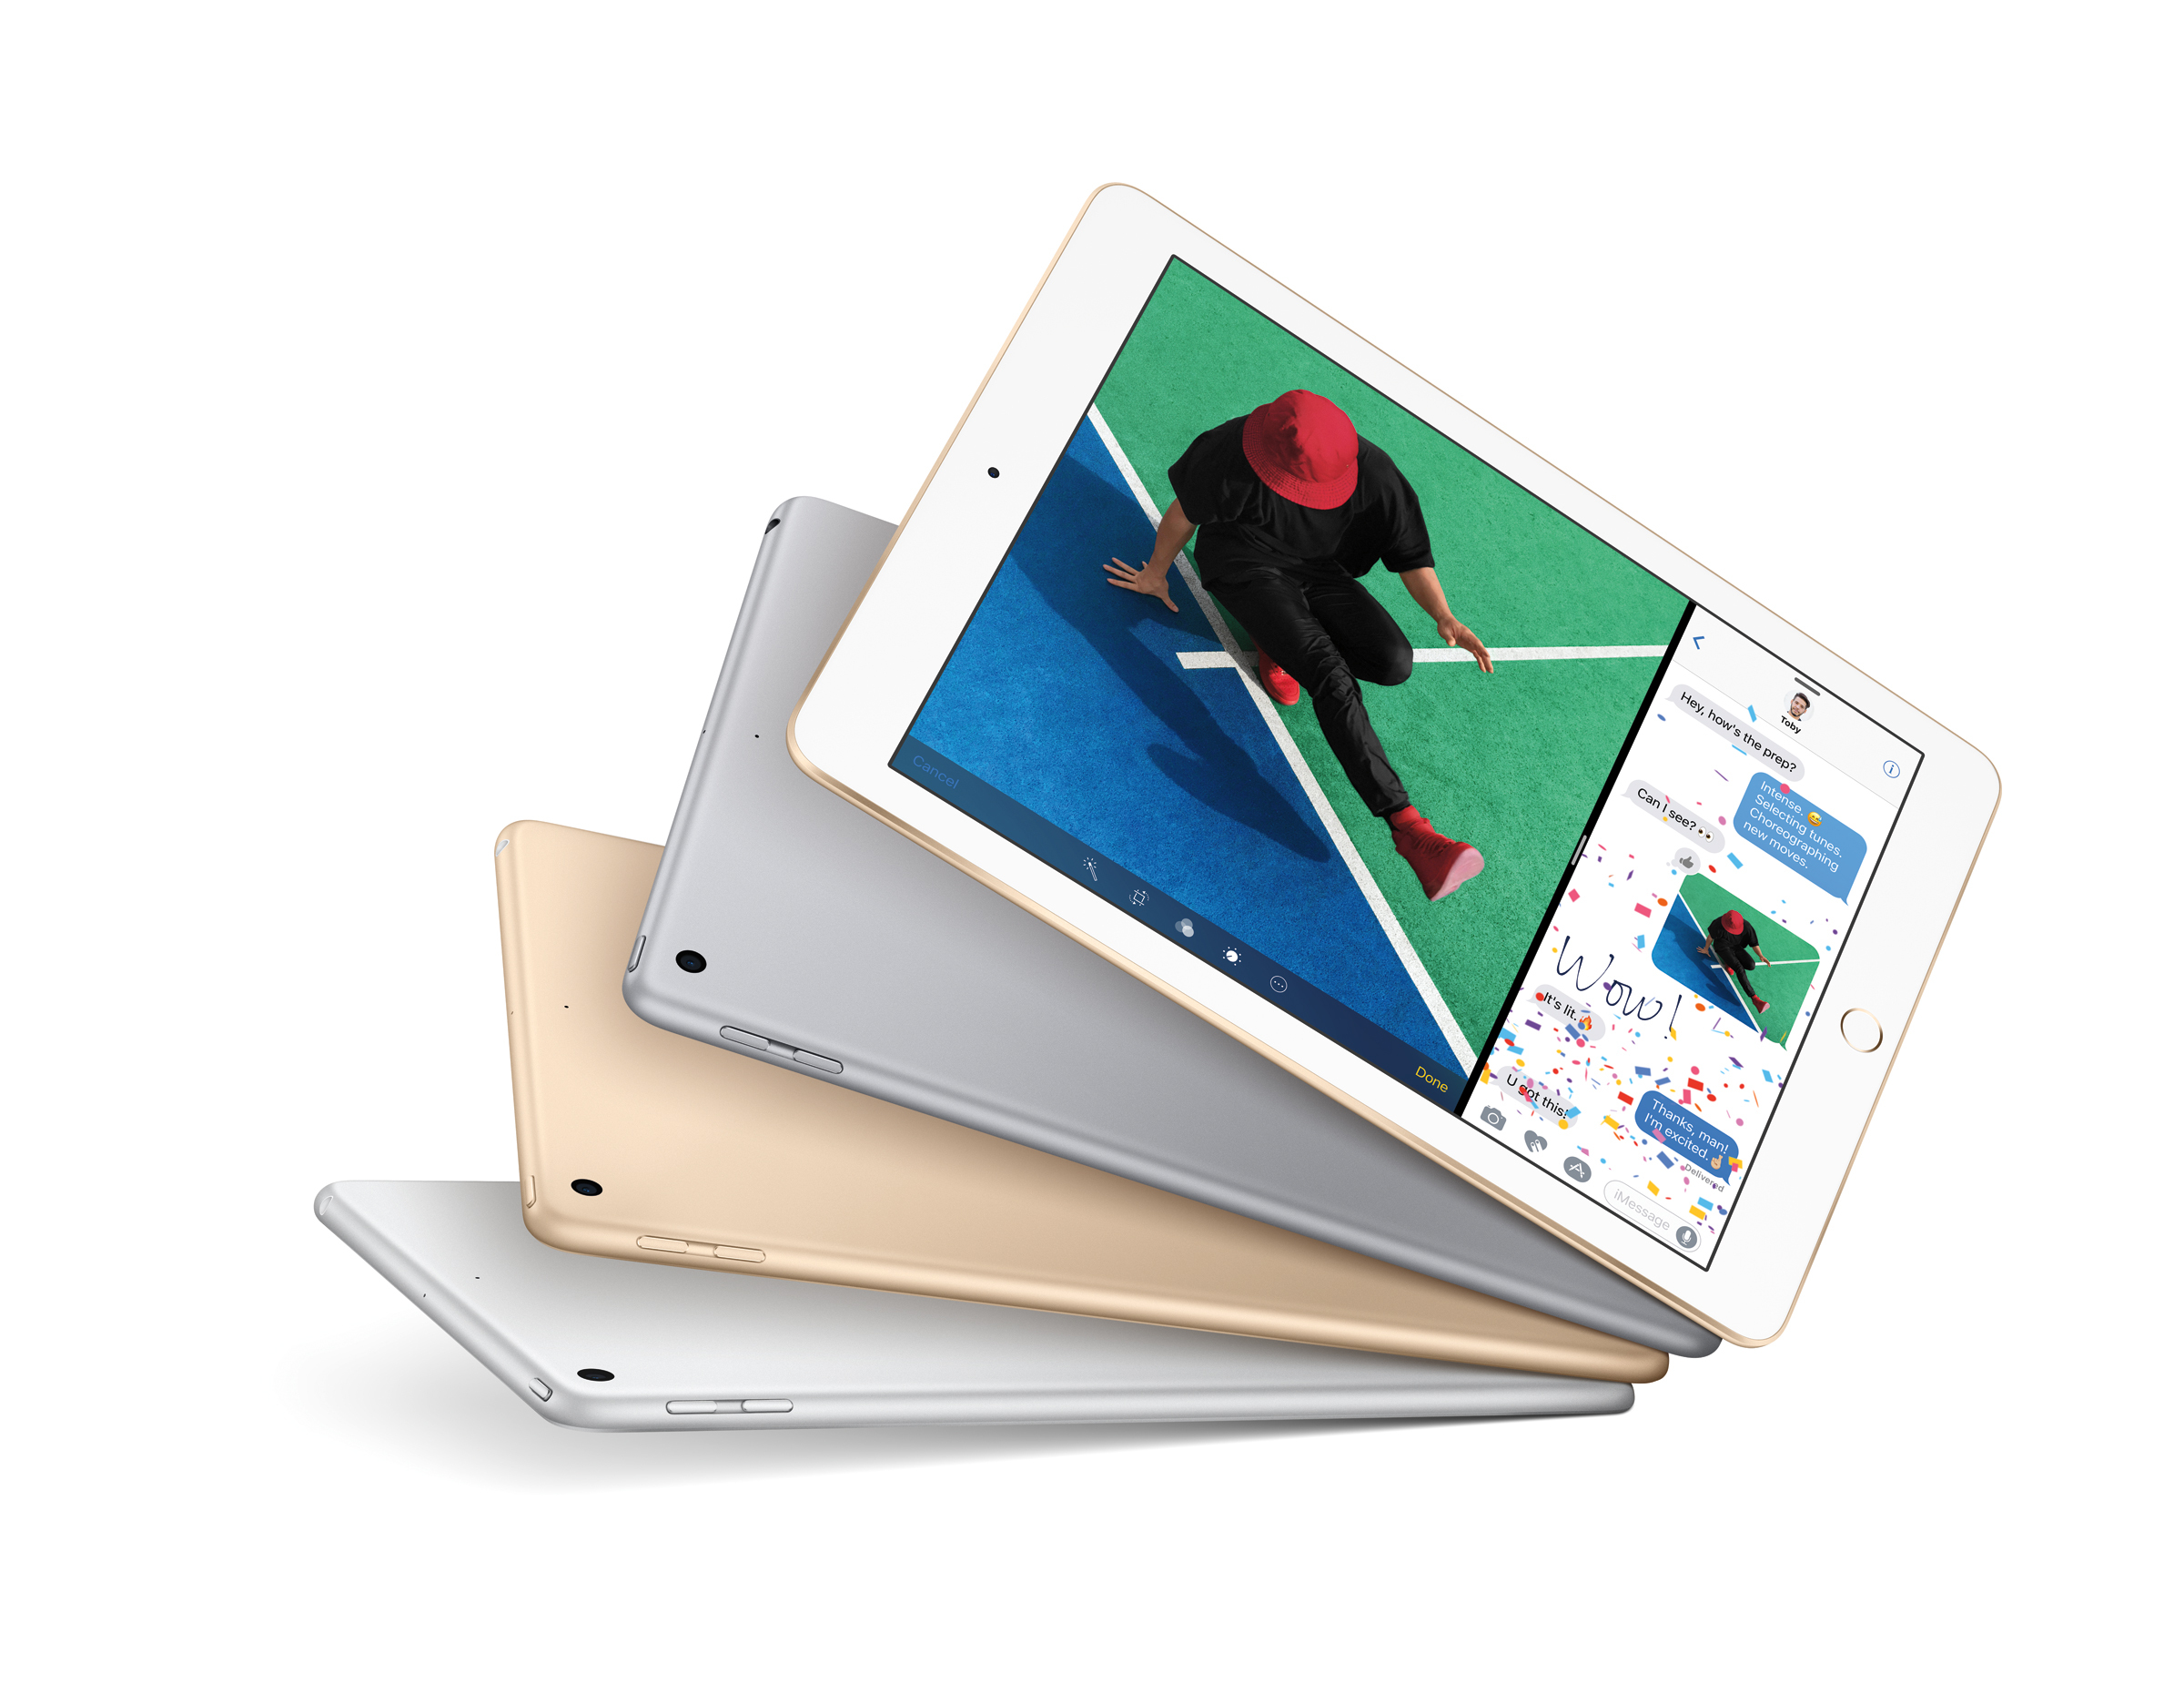 Apple iPad 9.7-inch (2017): Is It Good for Business?